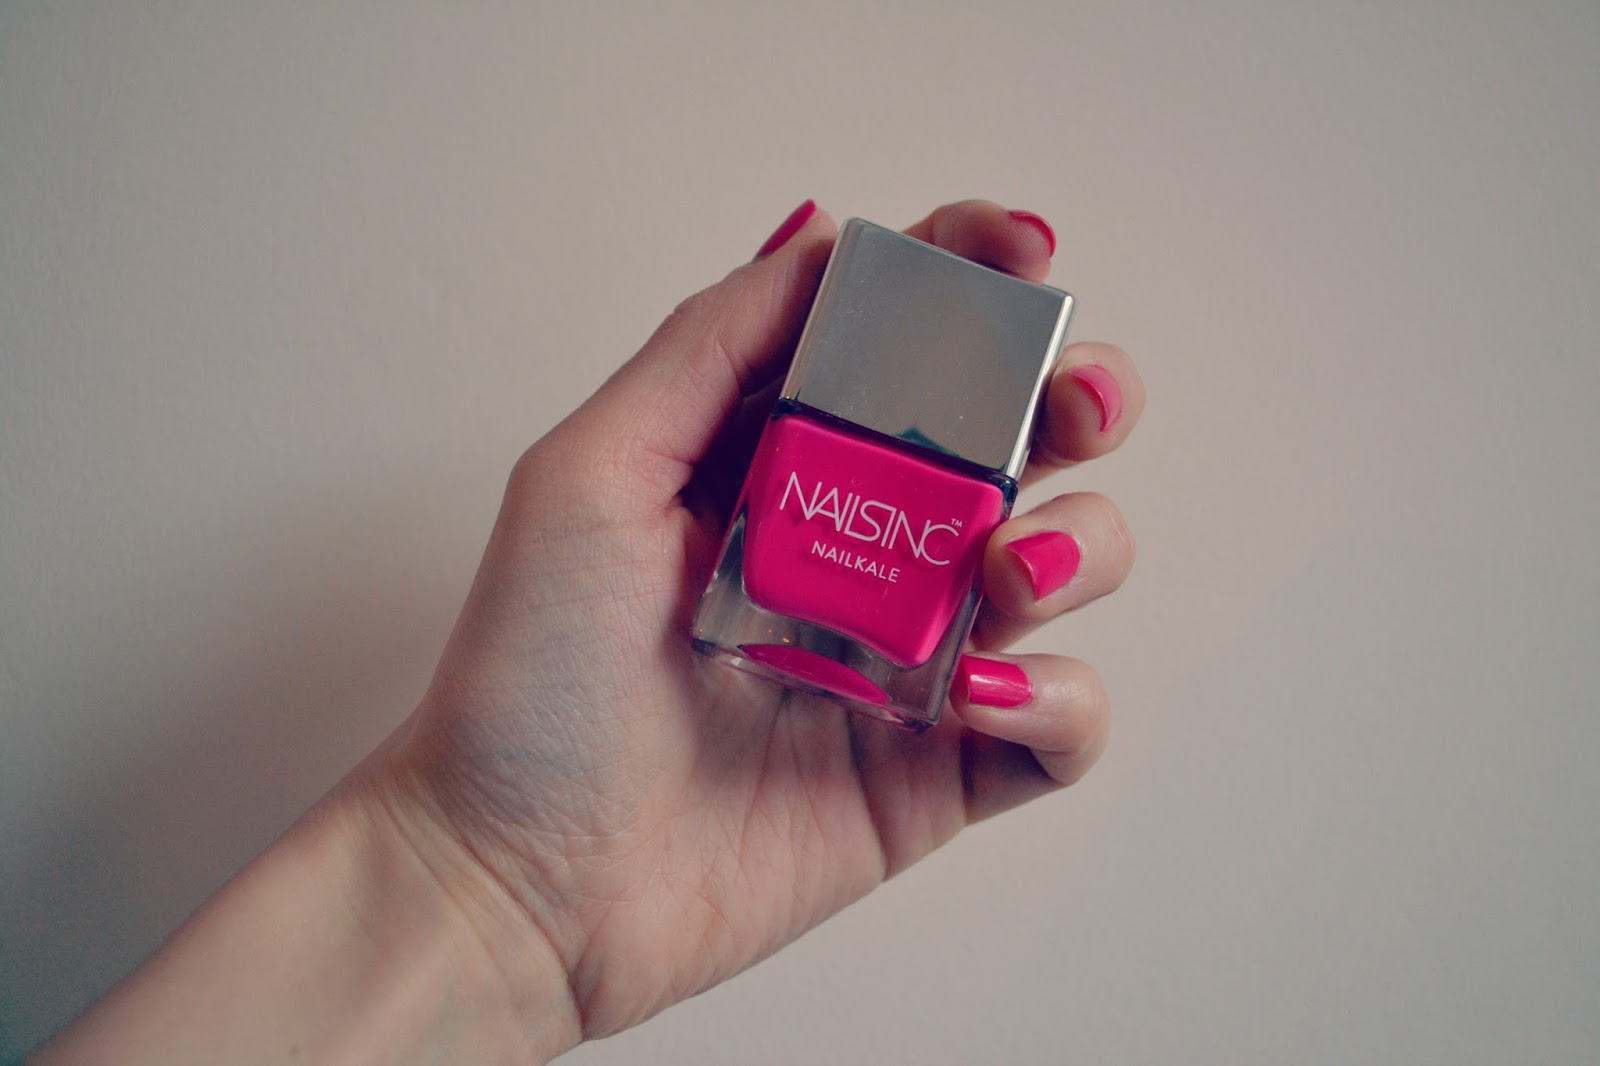 Review: Nails Inc Nail Kale | Credit Crunch Chic